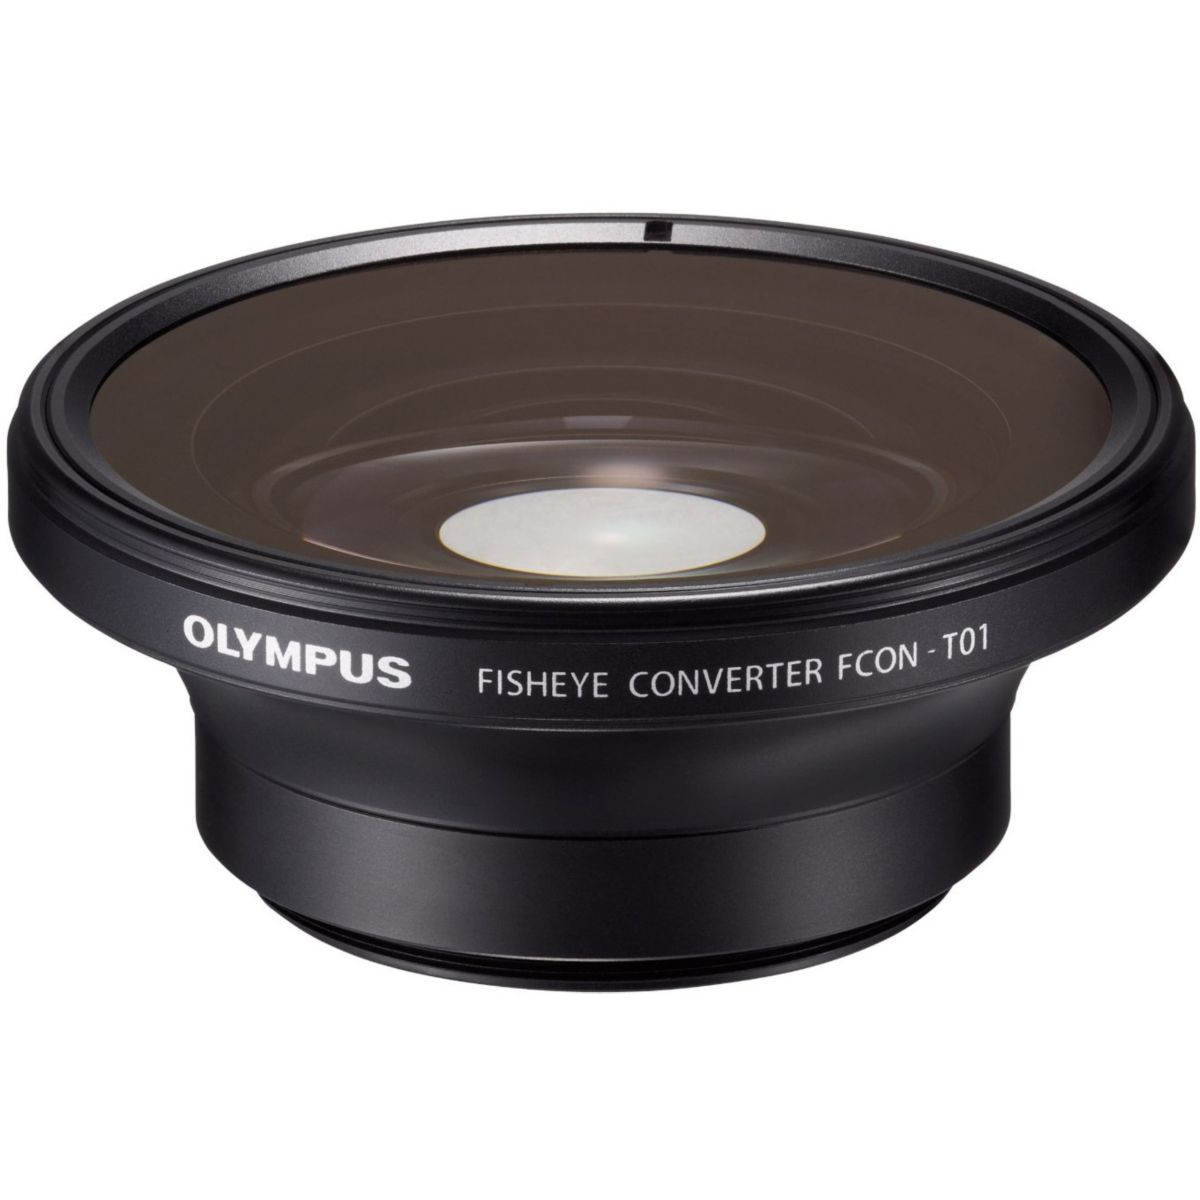 Objectif OLYMPUS Convertisseur Fisheye FCON-P01 pour TG-1, 2, 3, 4